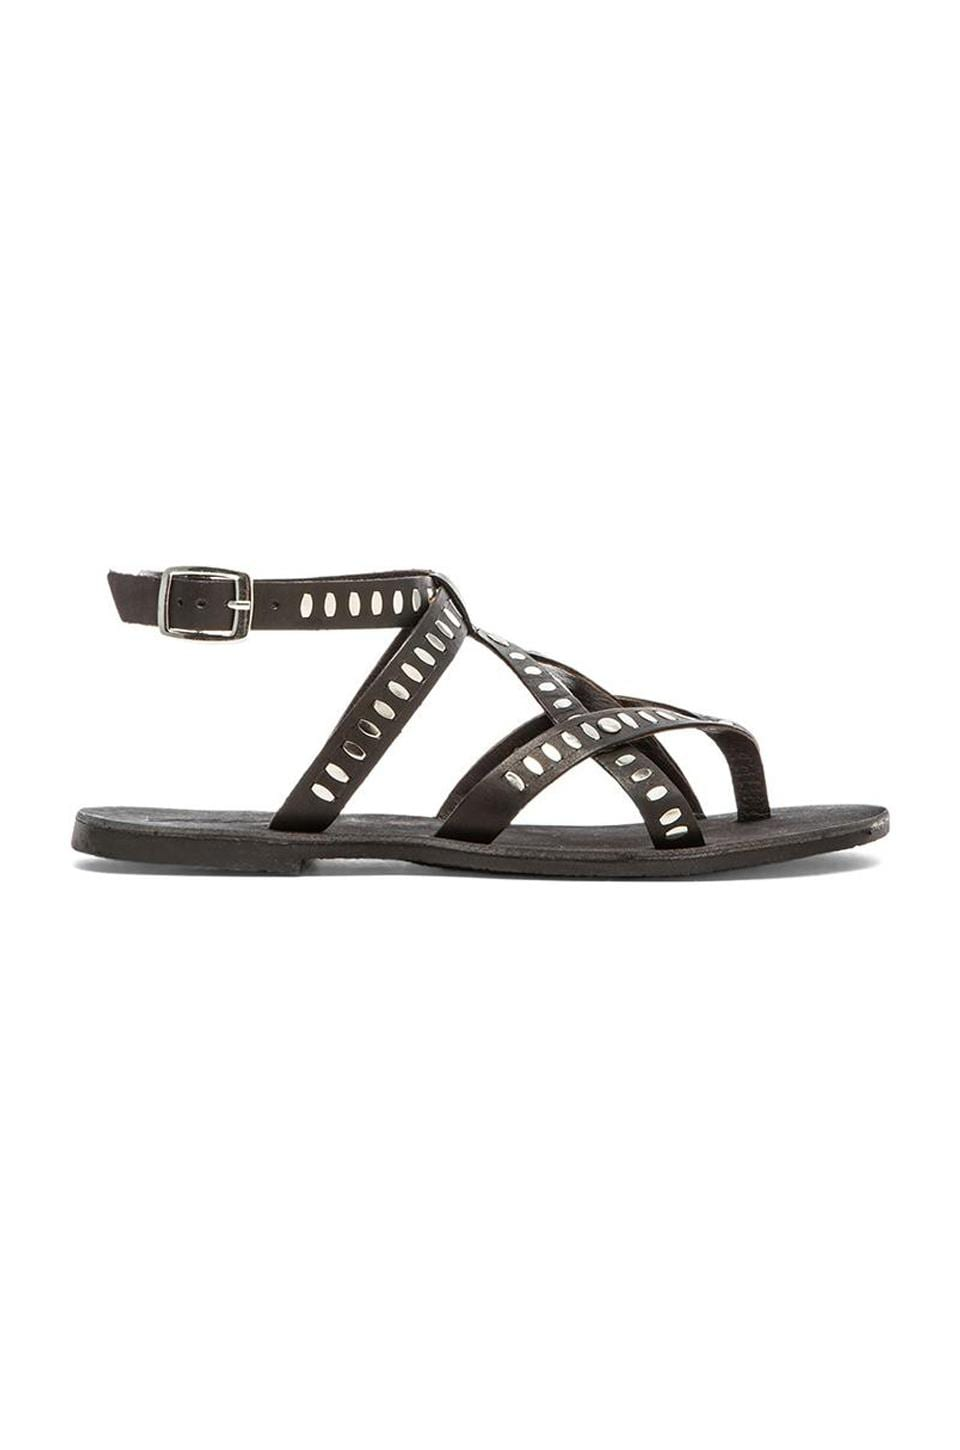 Rebels Alana Sandal in Black